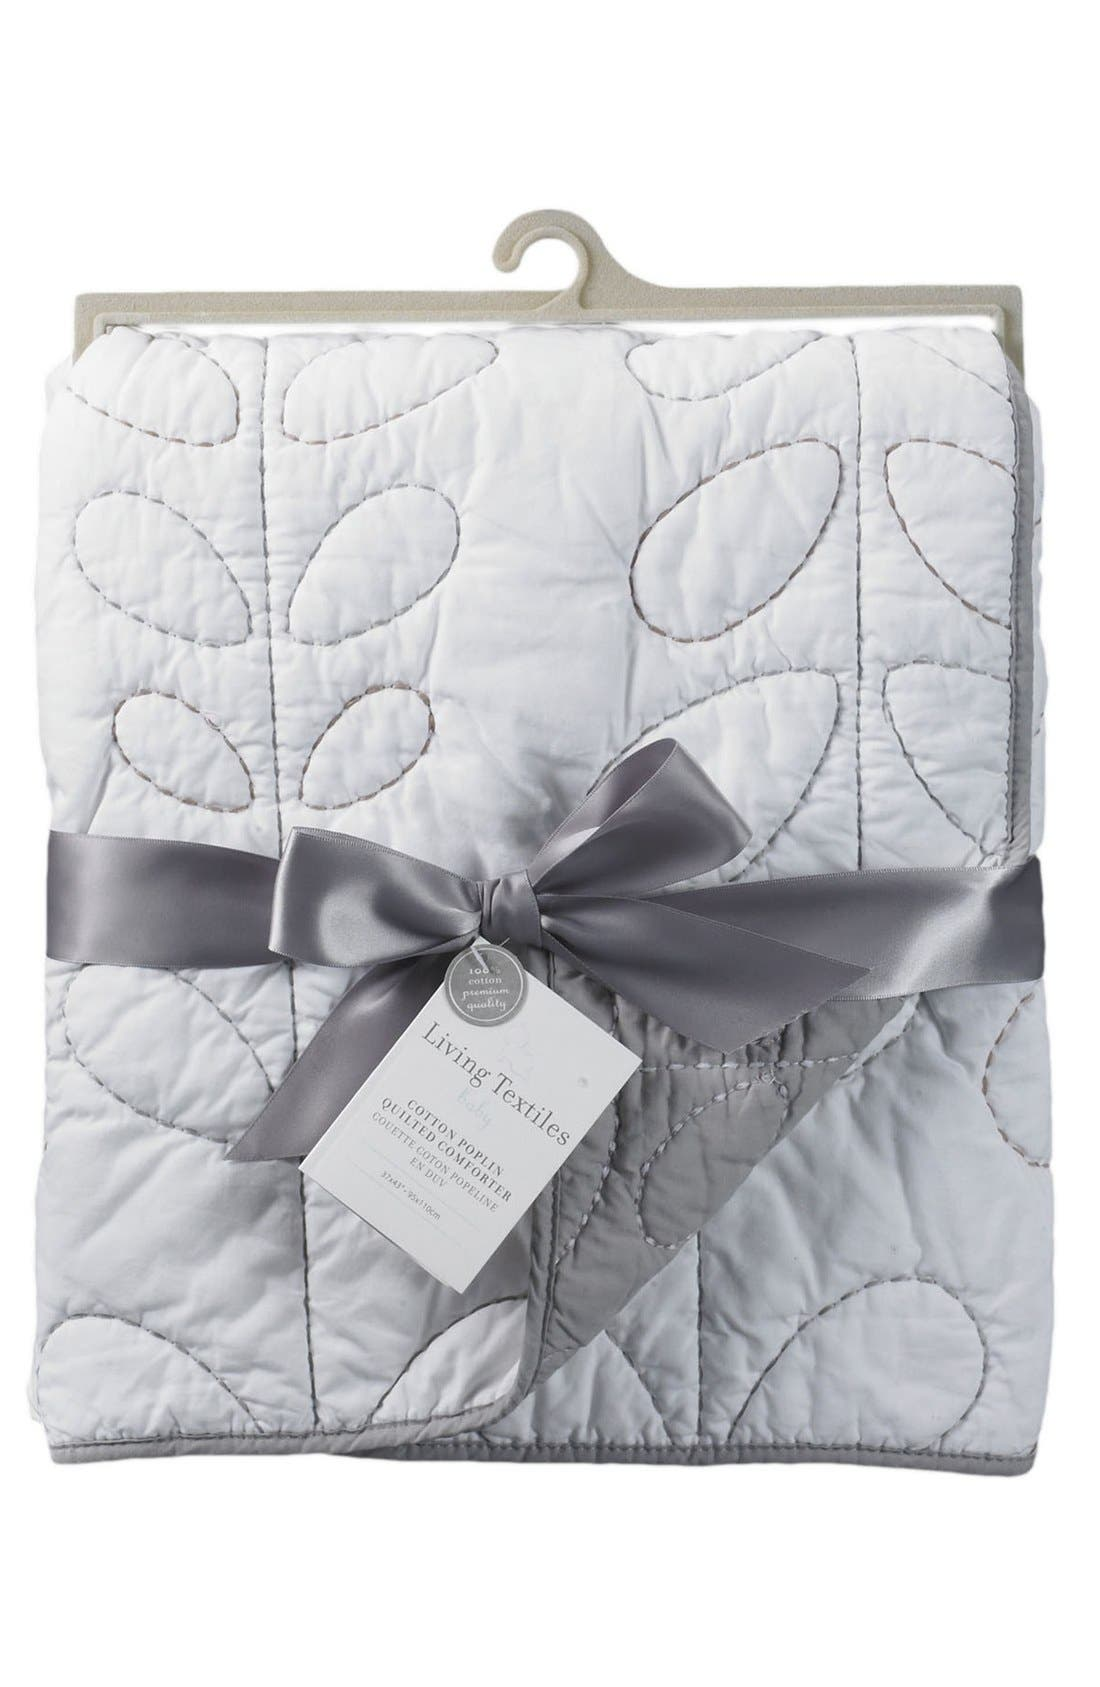 Poplin Quilted Comforter,                         Main,                         color, White/ Grey